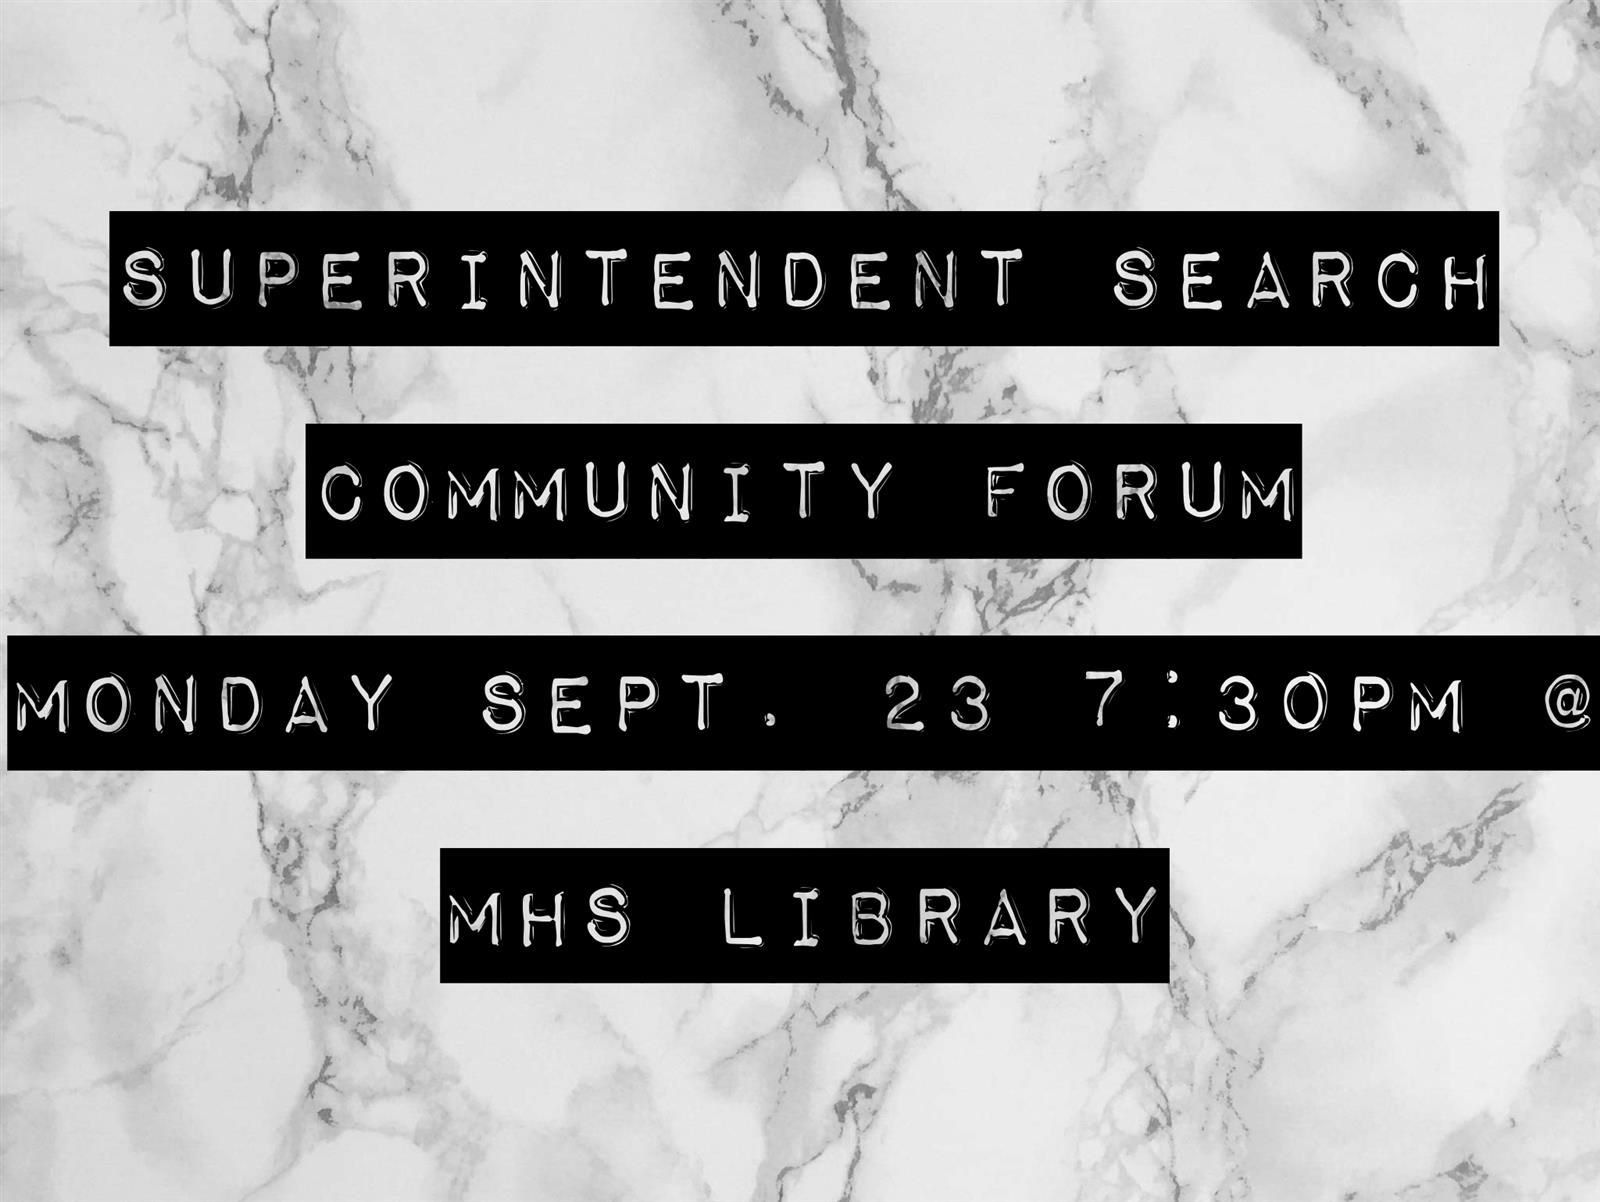 Superintendent Search - Open Community Forum